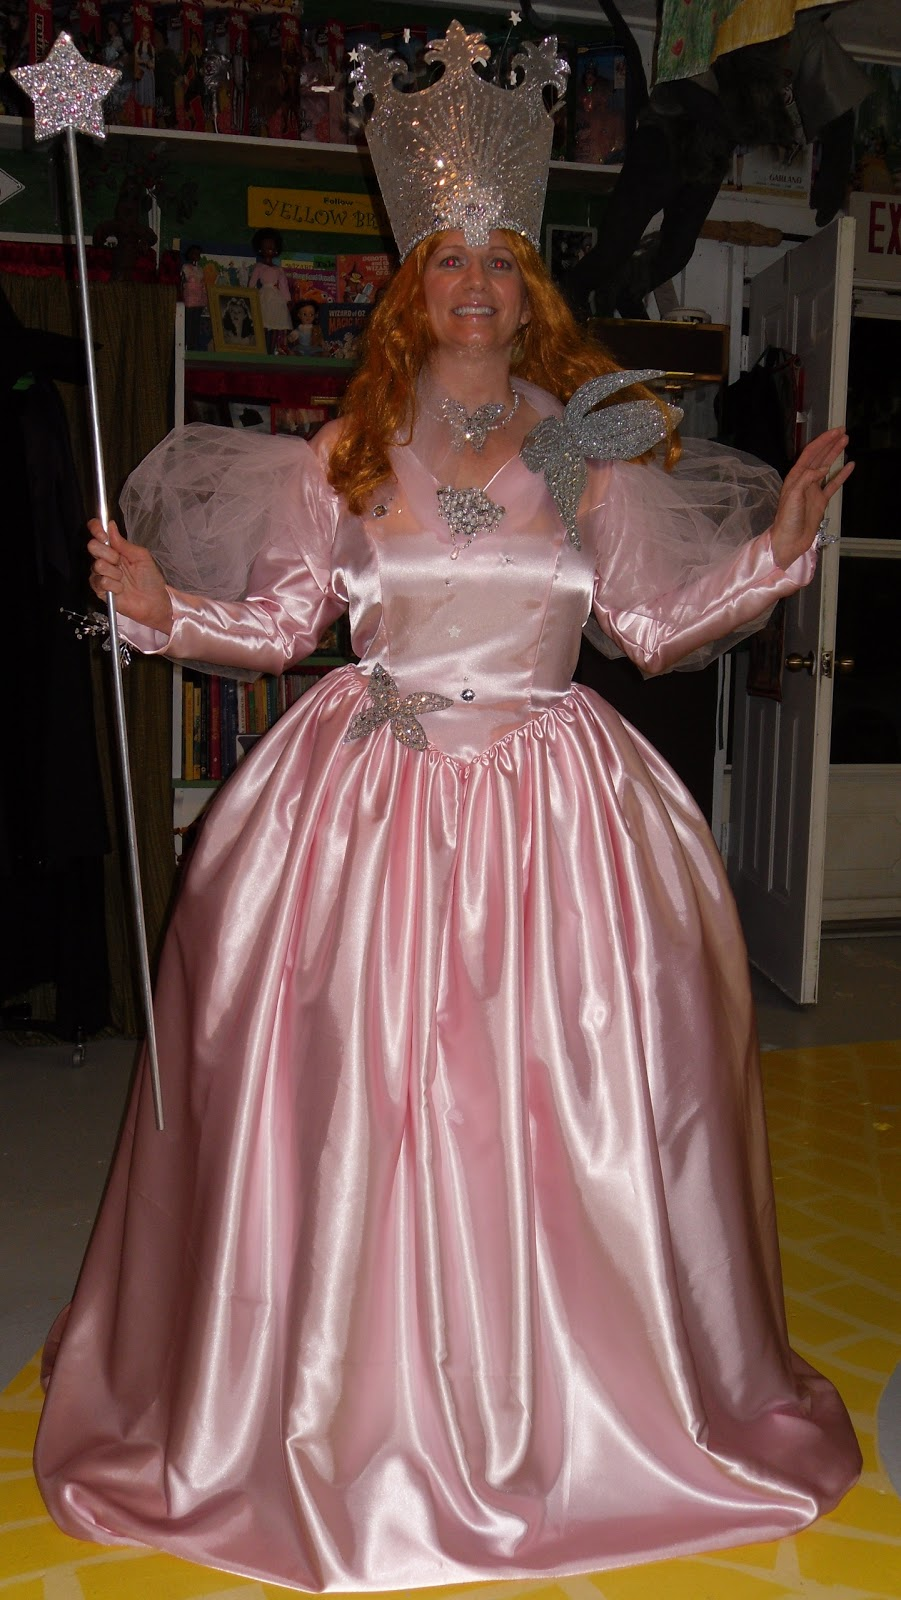 Costumes and props: Glinda the good witch